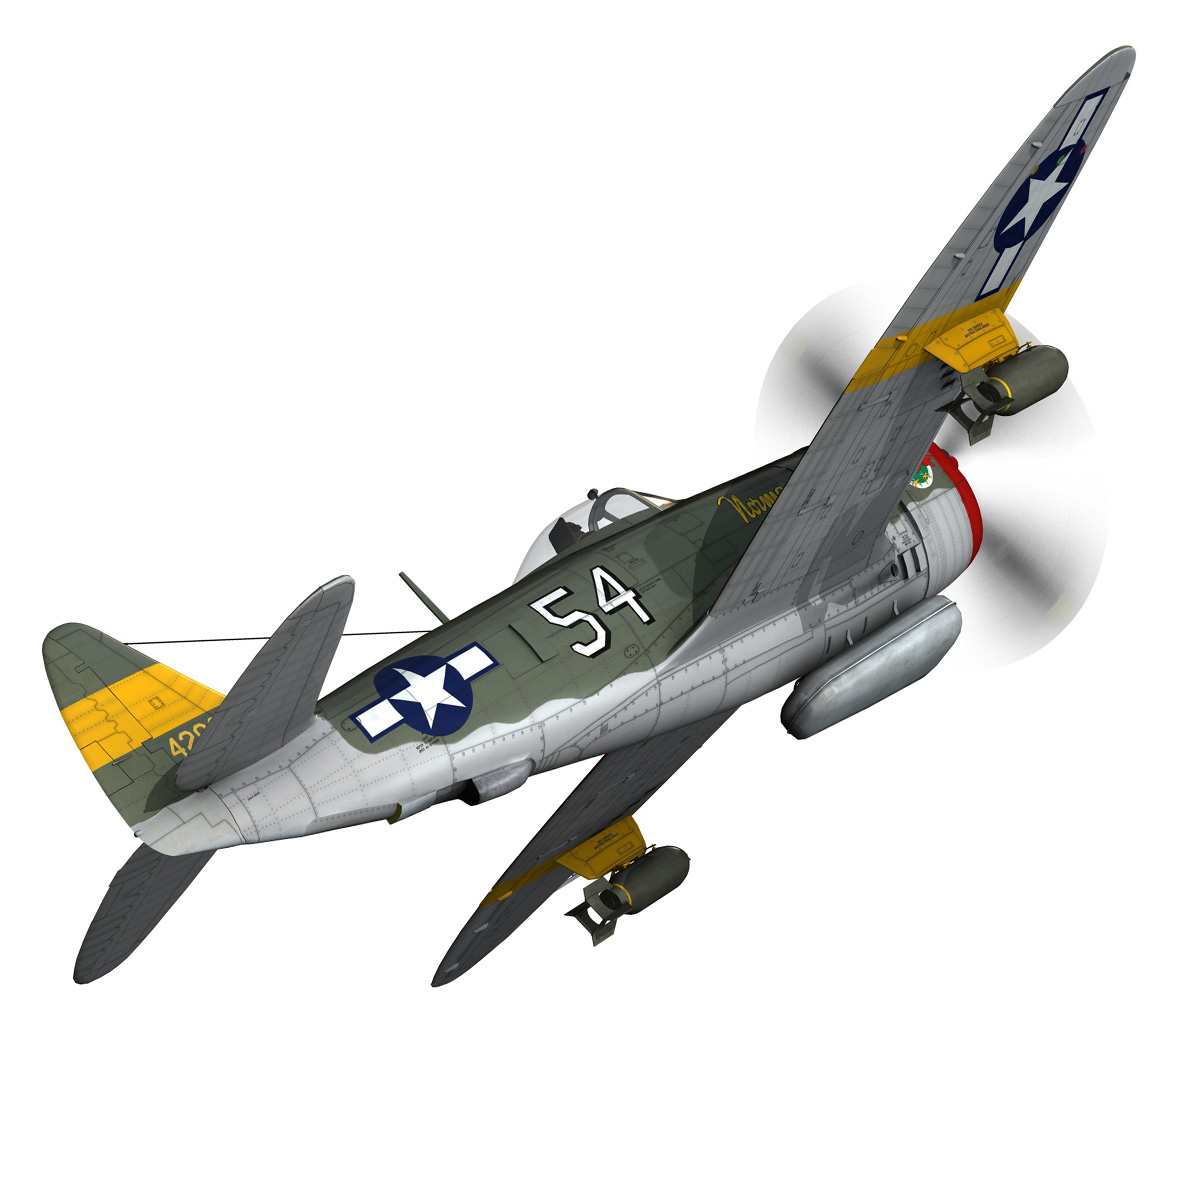 republic p-47d thunderbolt – little bunny 3d model fbx c4d lwo obj 274224